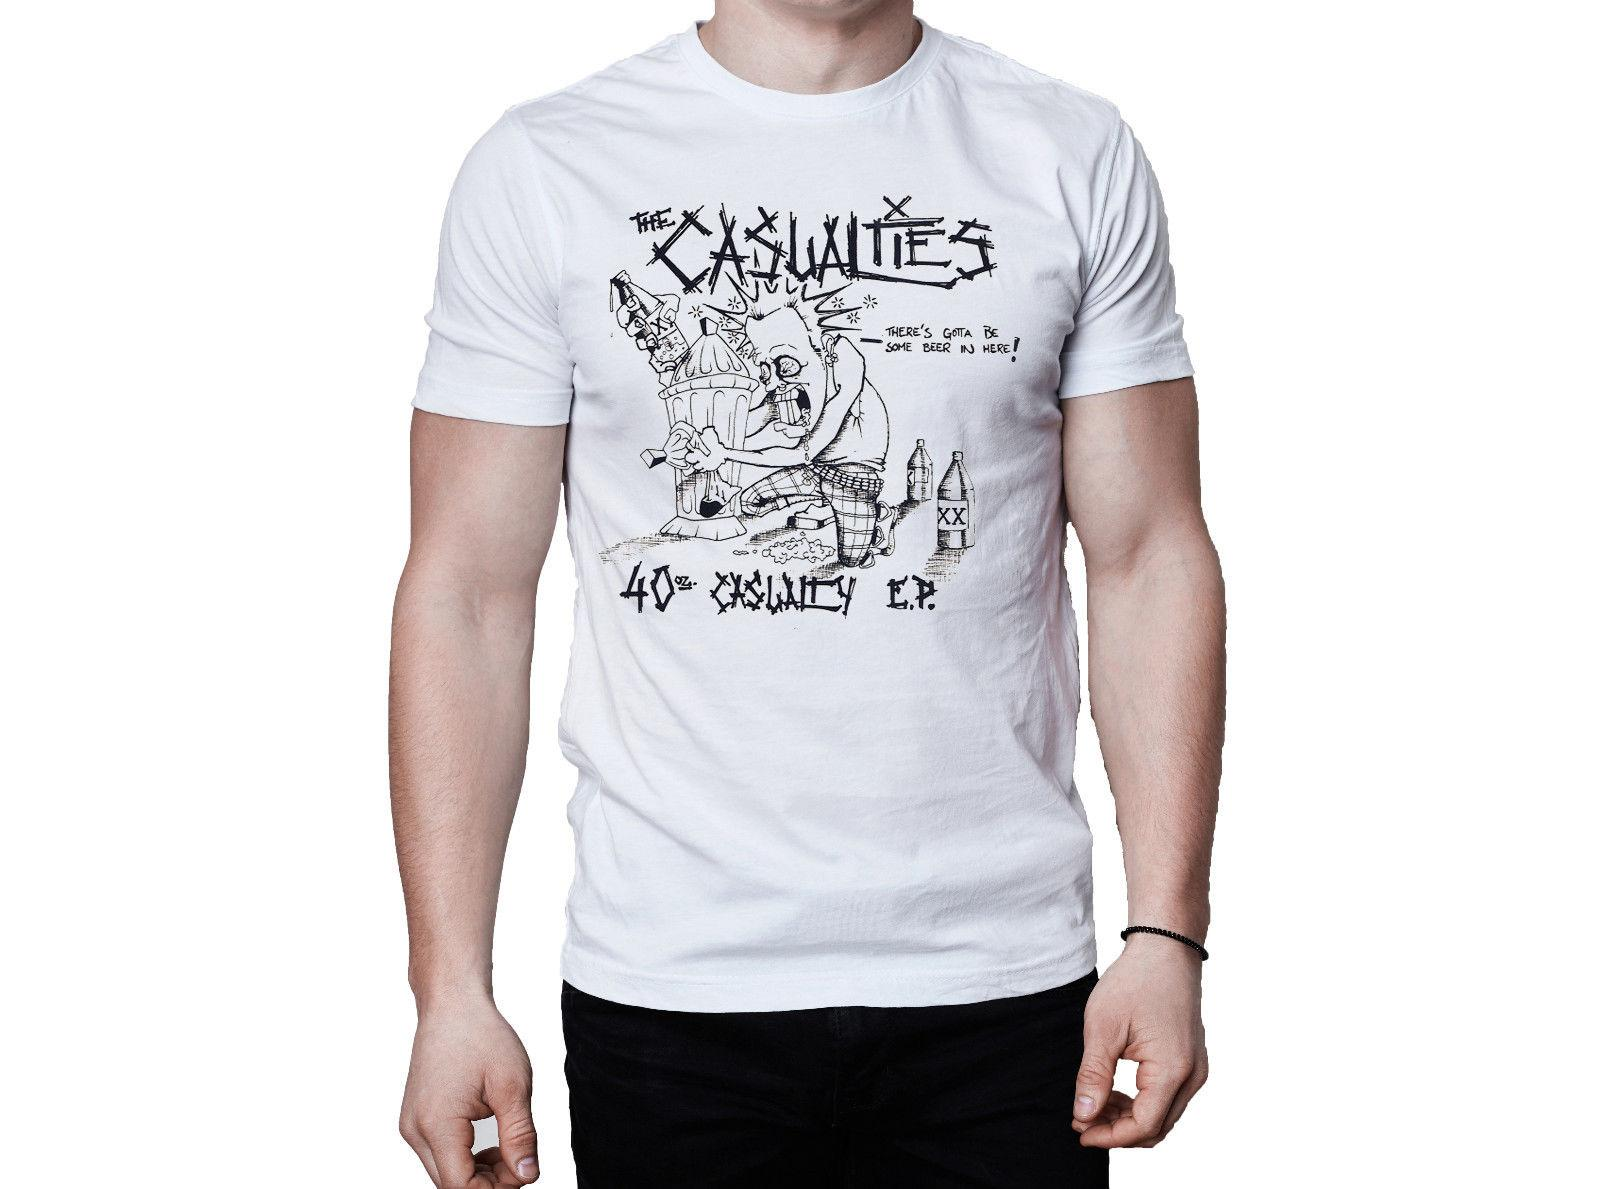 The Casualties 40 Oz Casualty 1992 Ep Cover Cover T-shirt T Shirt Marchio 2018 Maschio Short Sleeve Top Tee O - Neck T Shirt Uomo